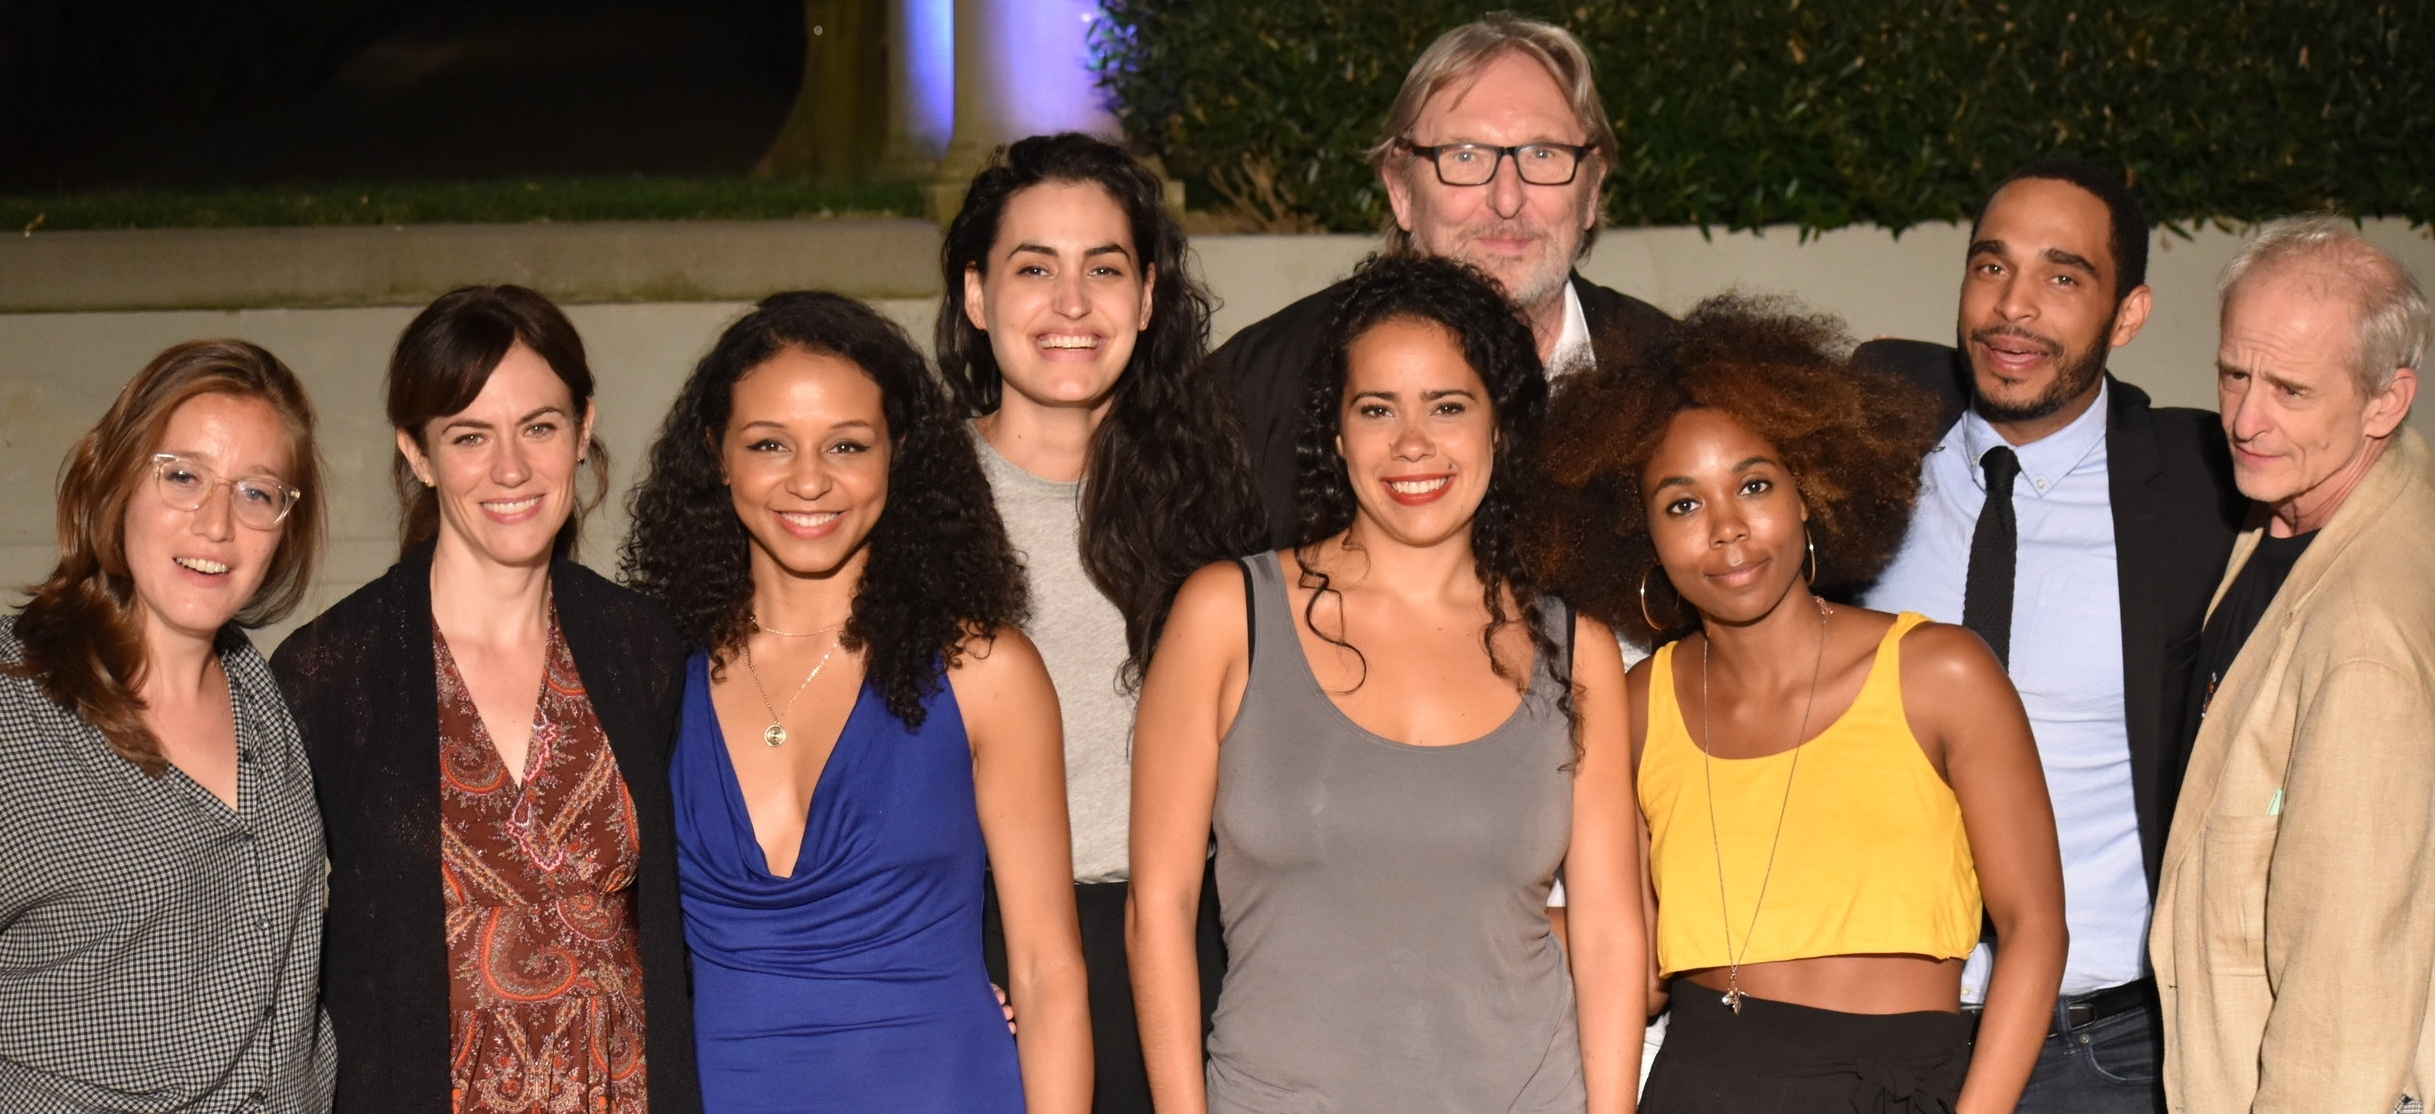 From L to R: Caroline Englander, Maggie Siff, Carra Patterson, Rosa Gilmore, Keren Lugo, Mark Wing-Davey (head of NYU Grad Acting), Naomi Lorrain, Ruffin Prentiss III and Jim Calder (director). Photo Credit: Devin Shacket.